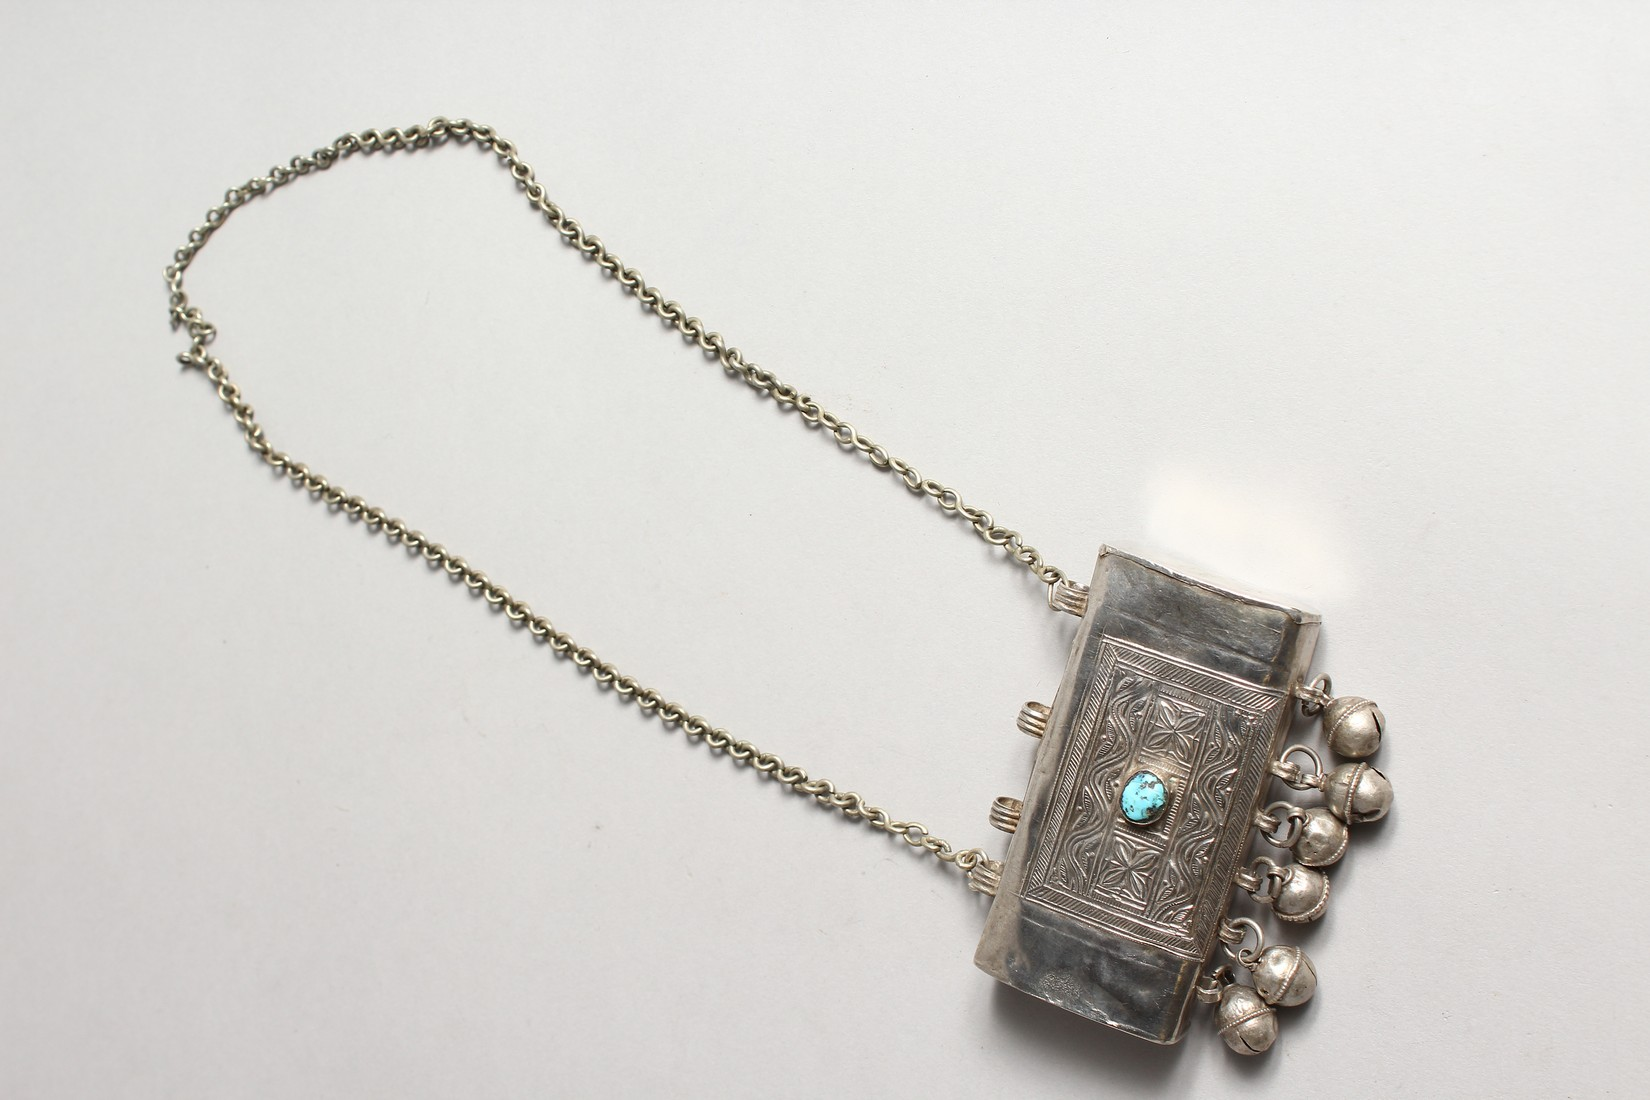 AN ISLAMIC SILVER BOX with bells, stone and chain - Image 2 of 3